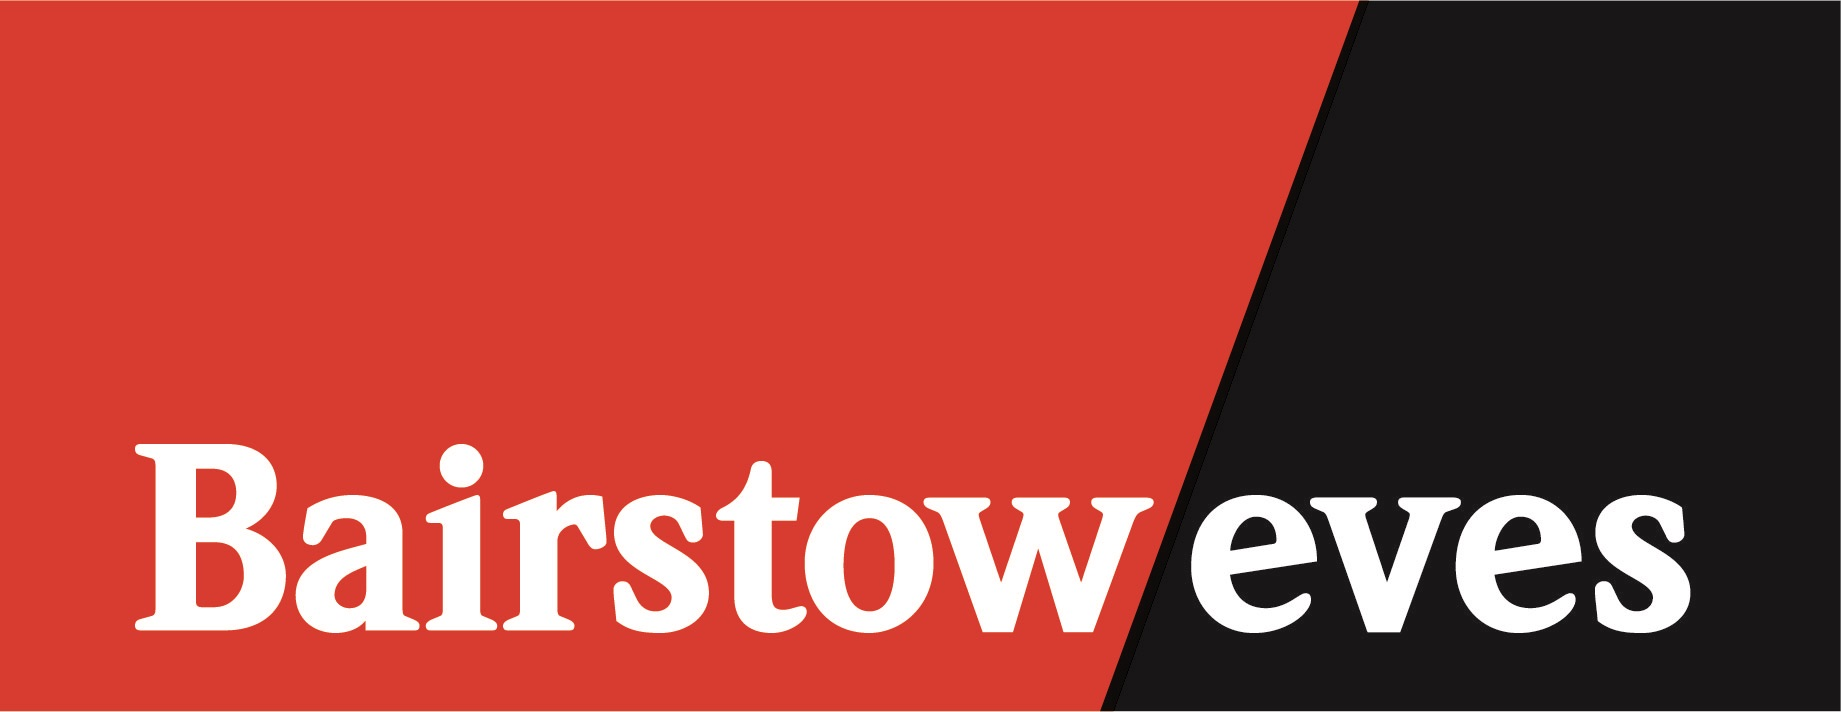 CW - Bairstow Eves - Cannock